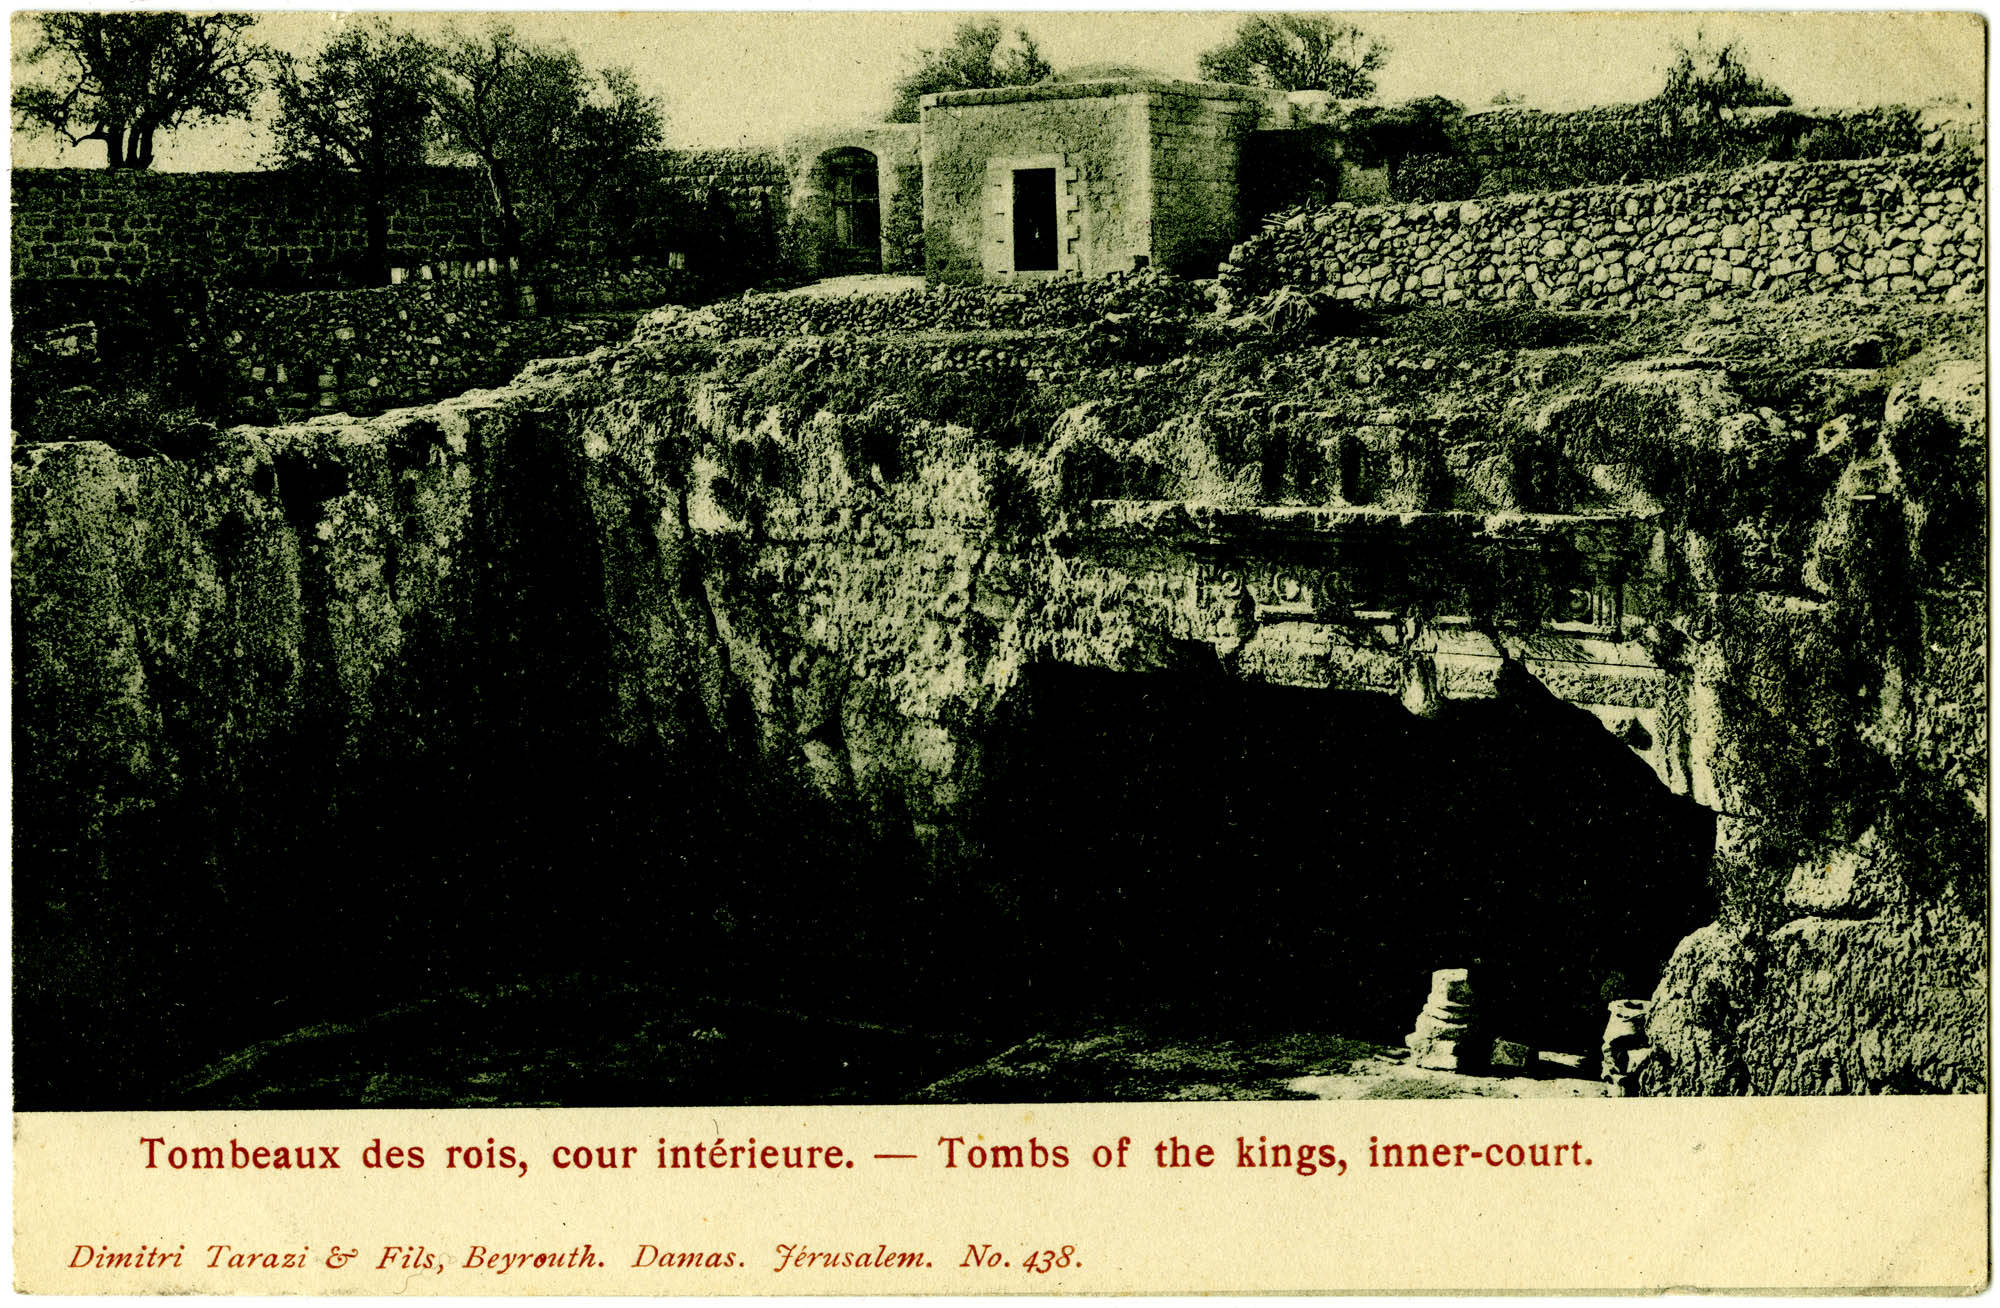 Tombeaux des rois, cour intérieure / Tombs of the Kings, inner court